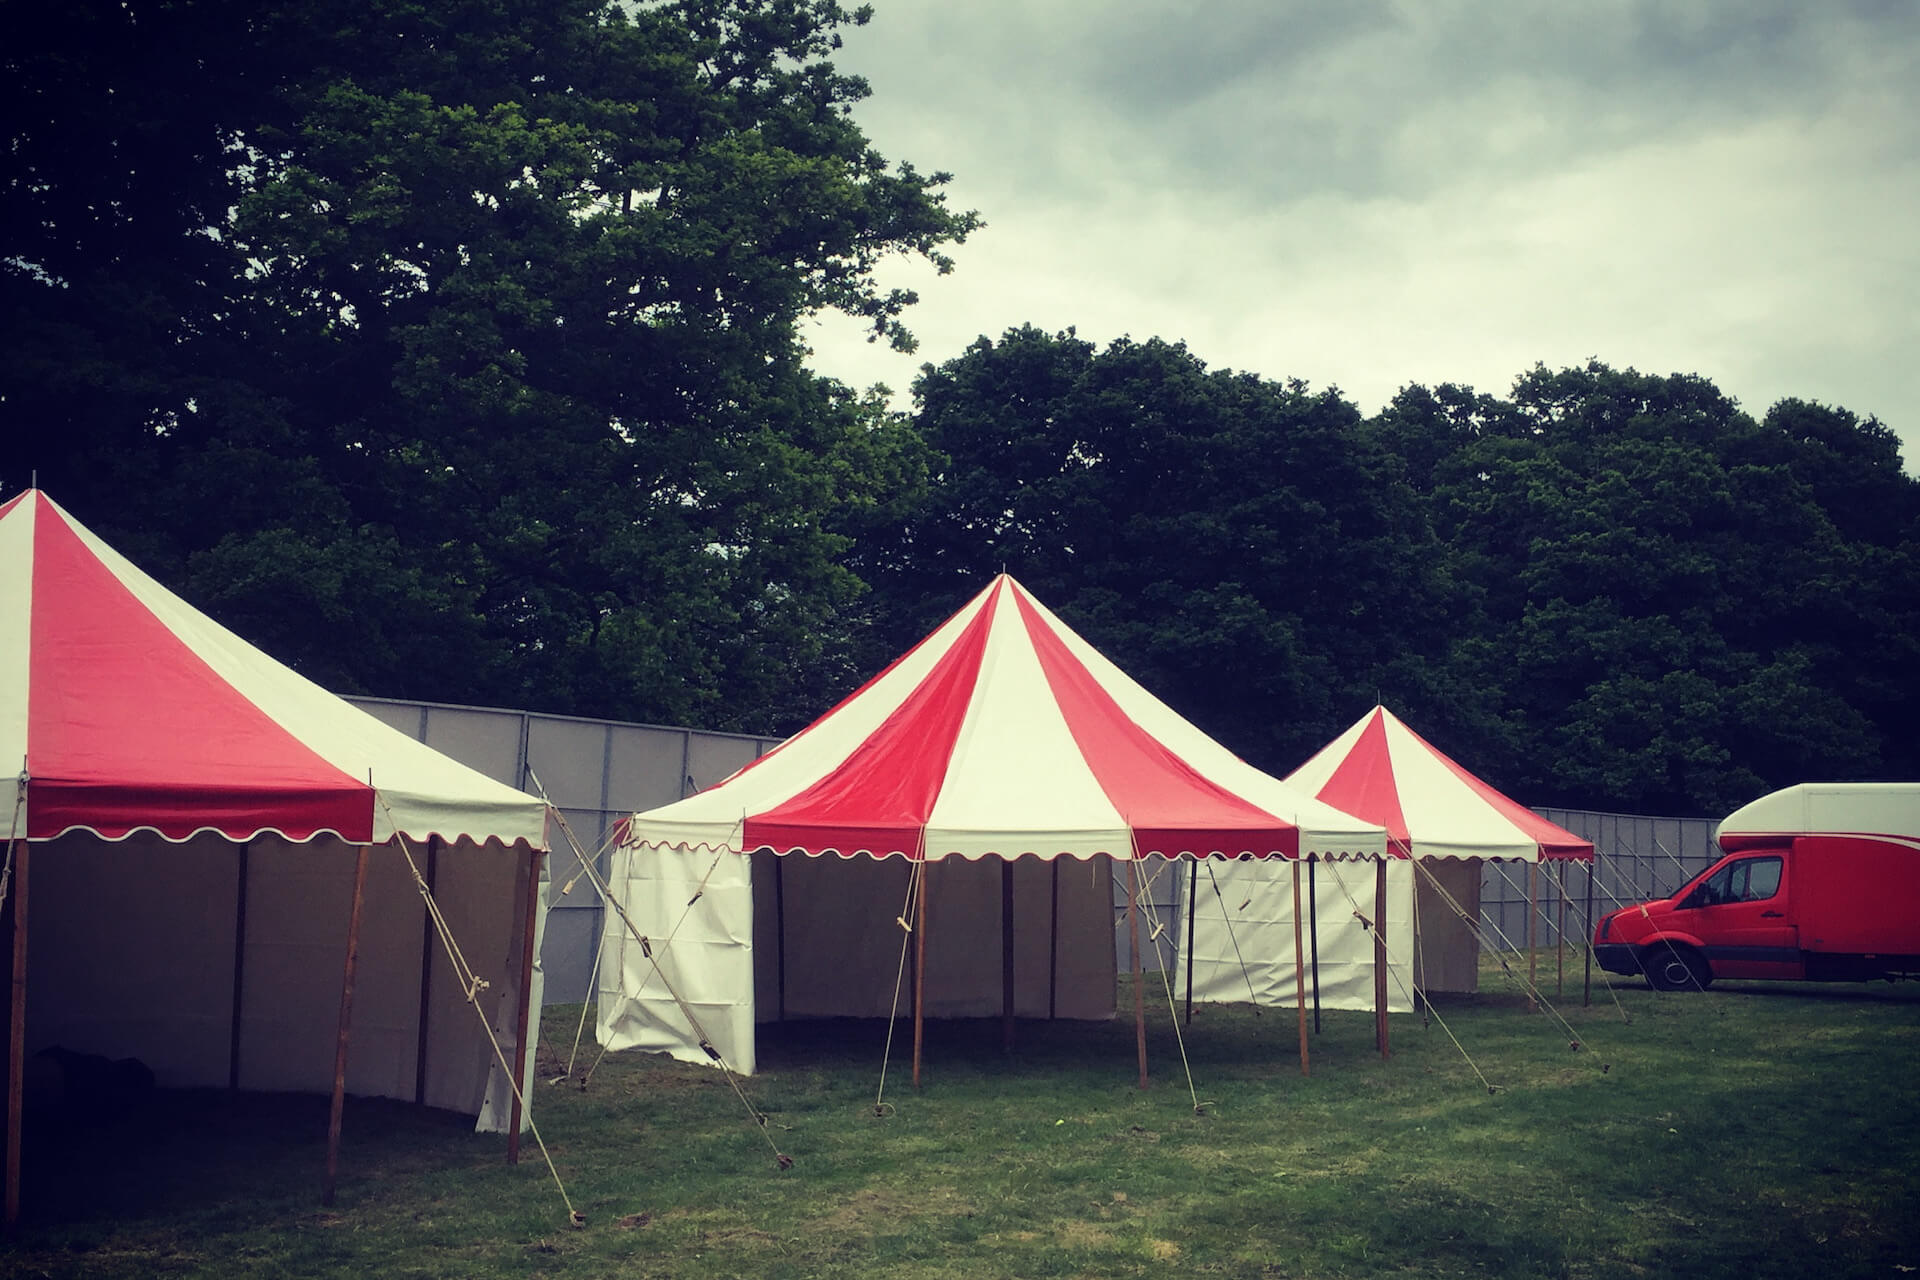 Red & white festival marquees